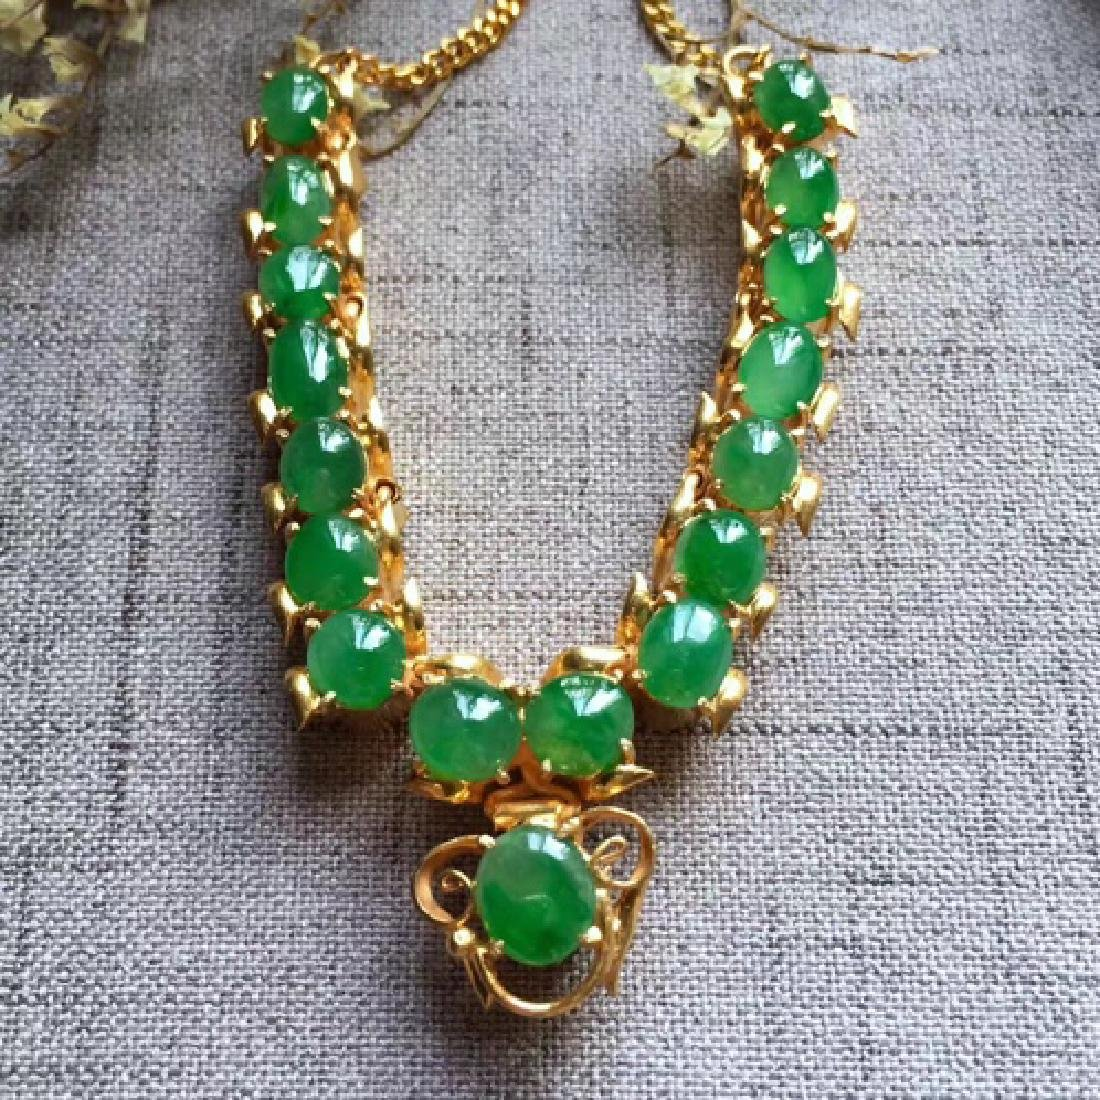 A NATURAL EGG-SHAPED PINGGUOLV JADEITE NECKLACE